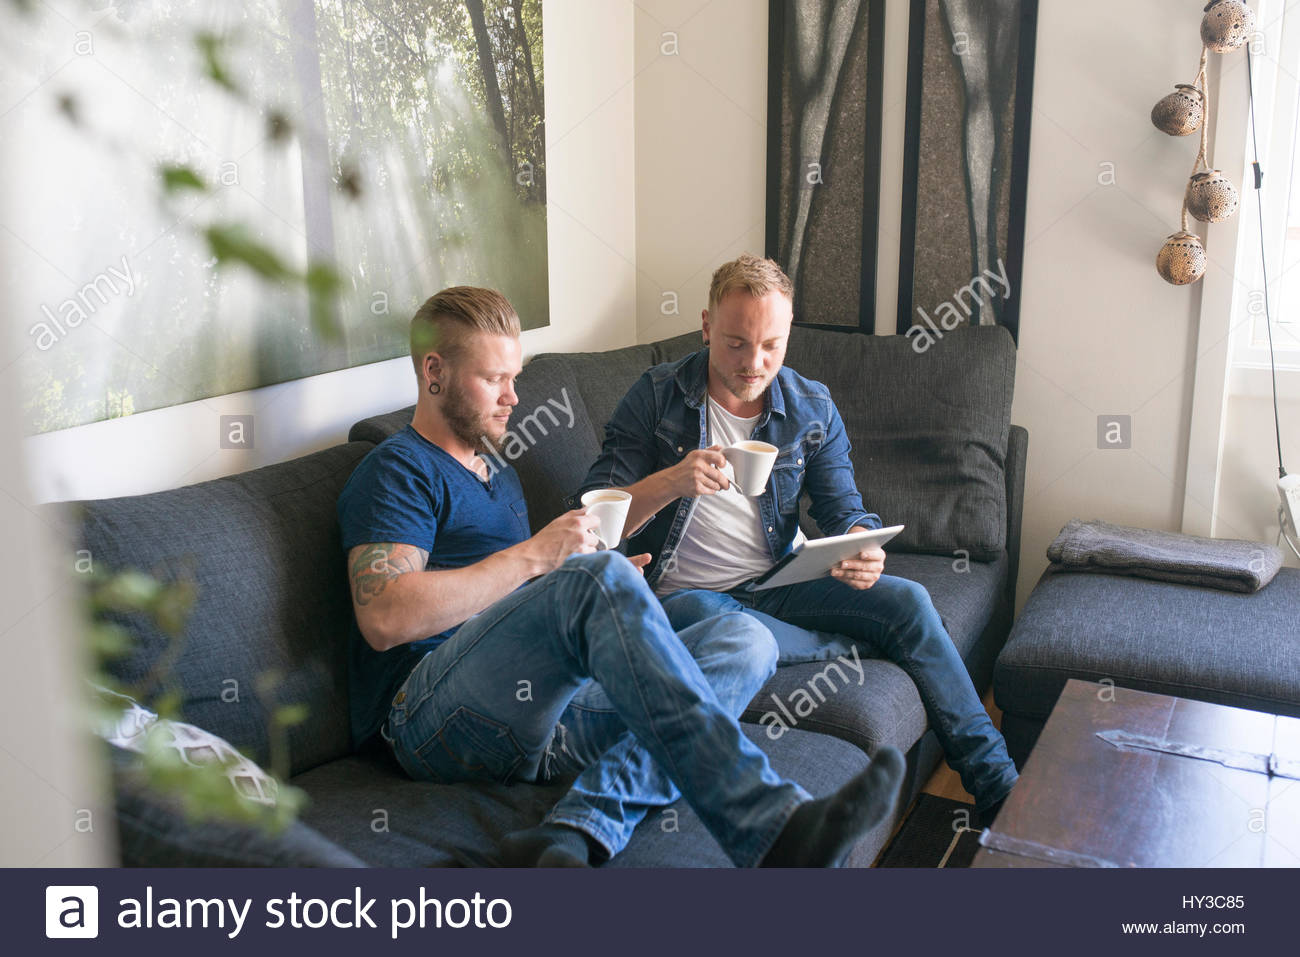 Norway, Couple using tablet and drinking coffee on sofa - Stock Image